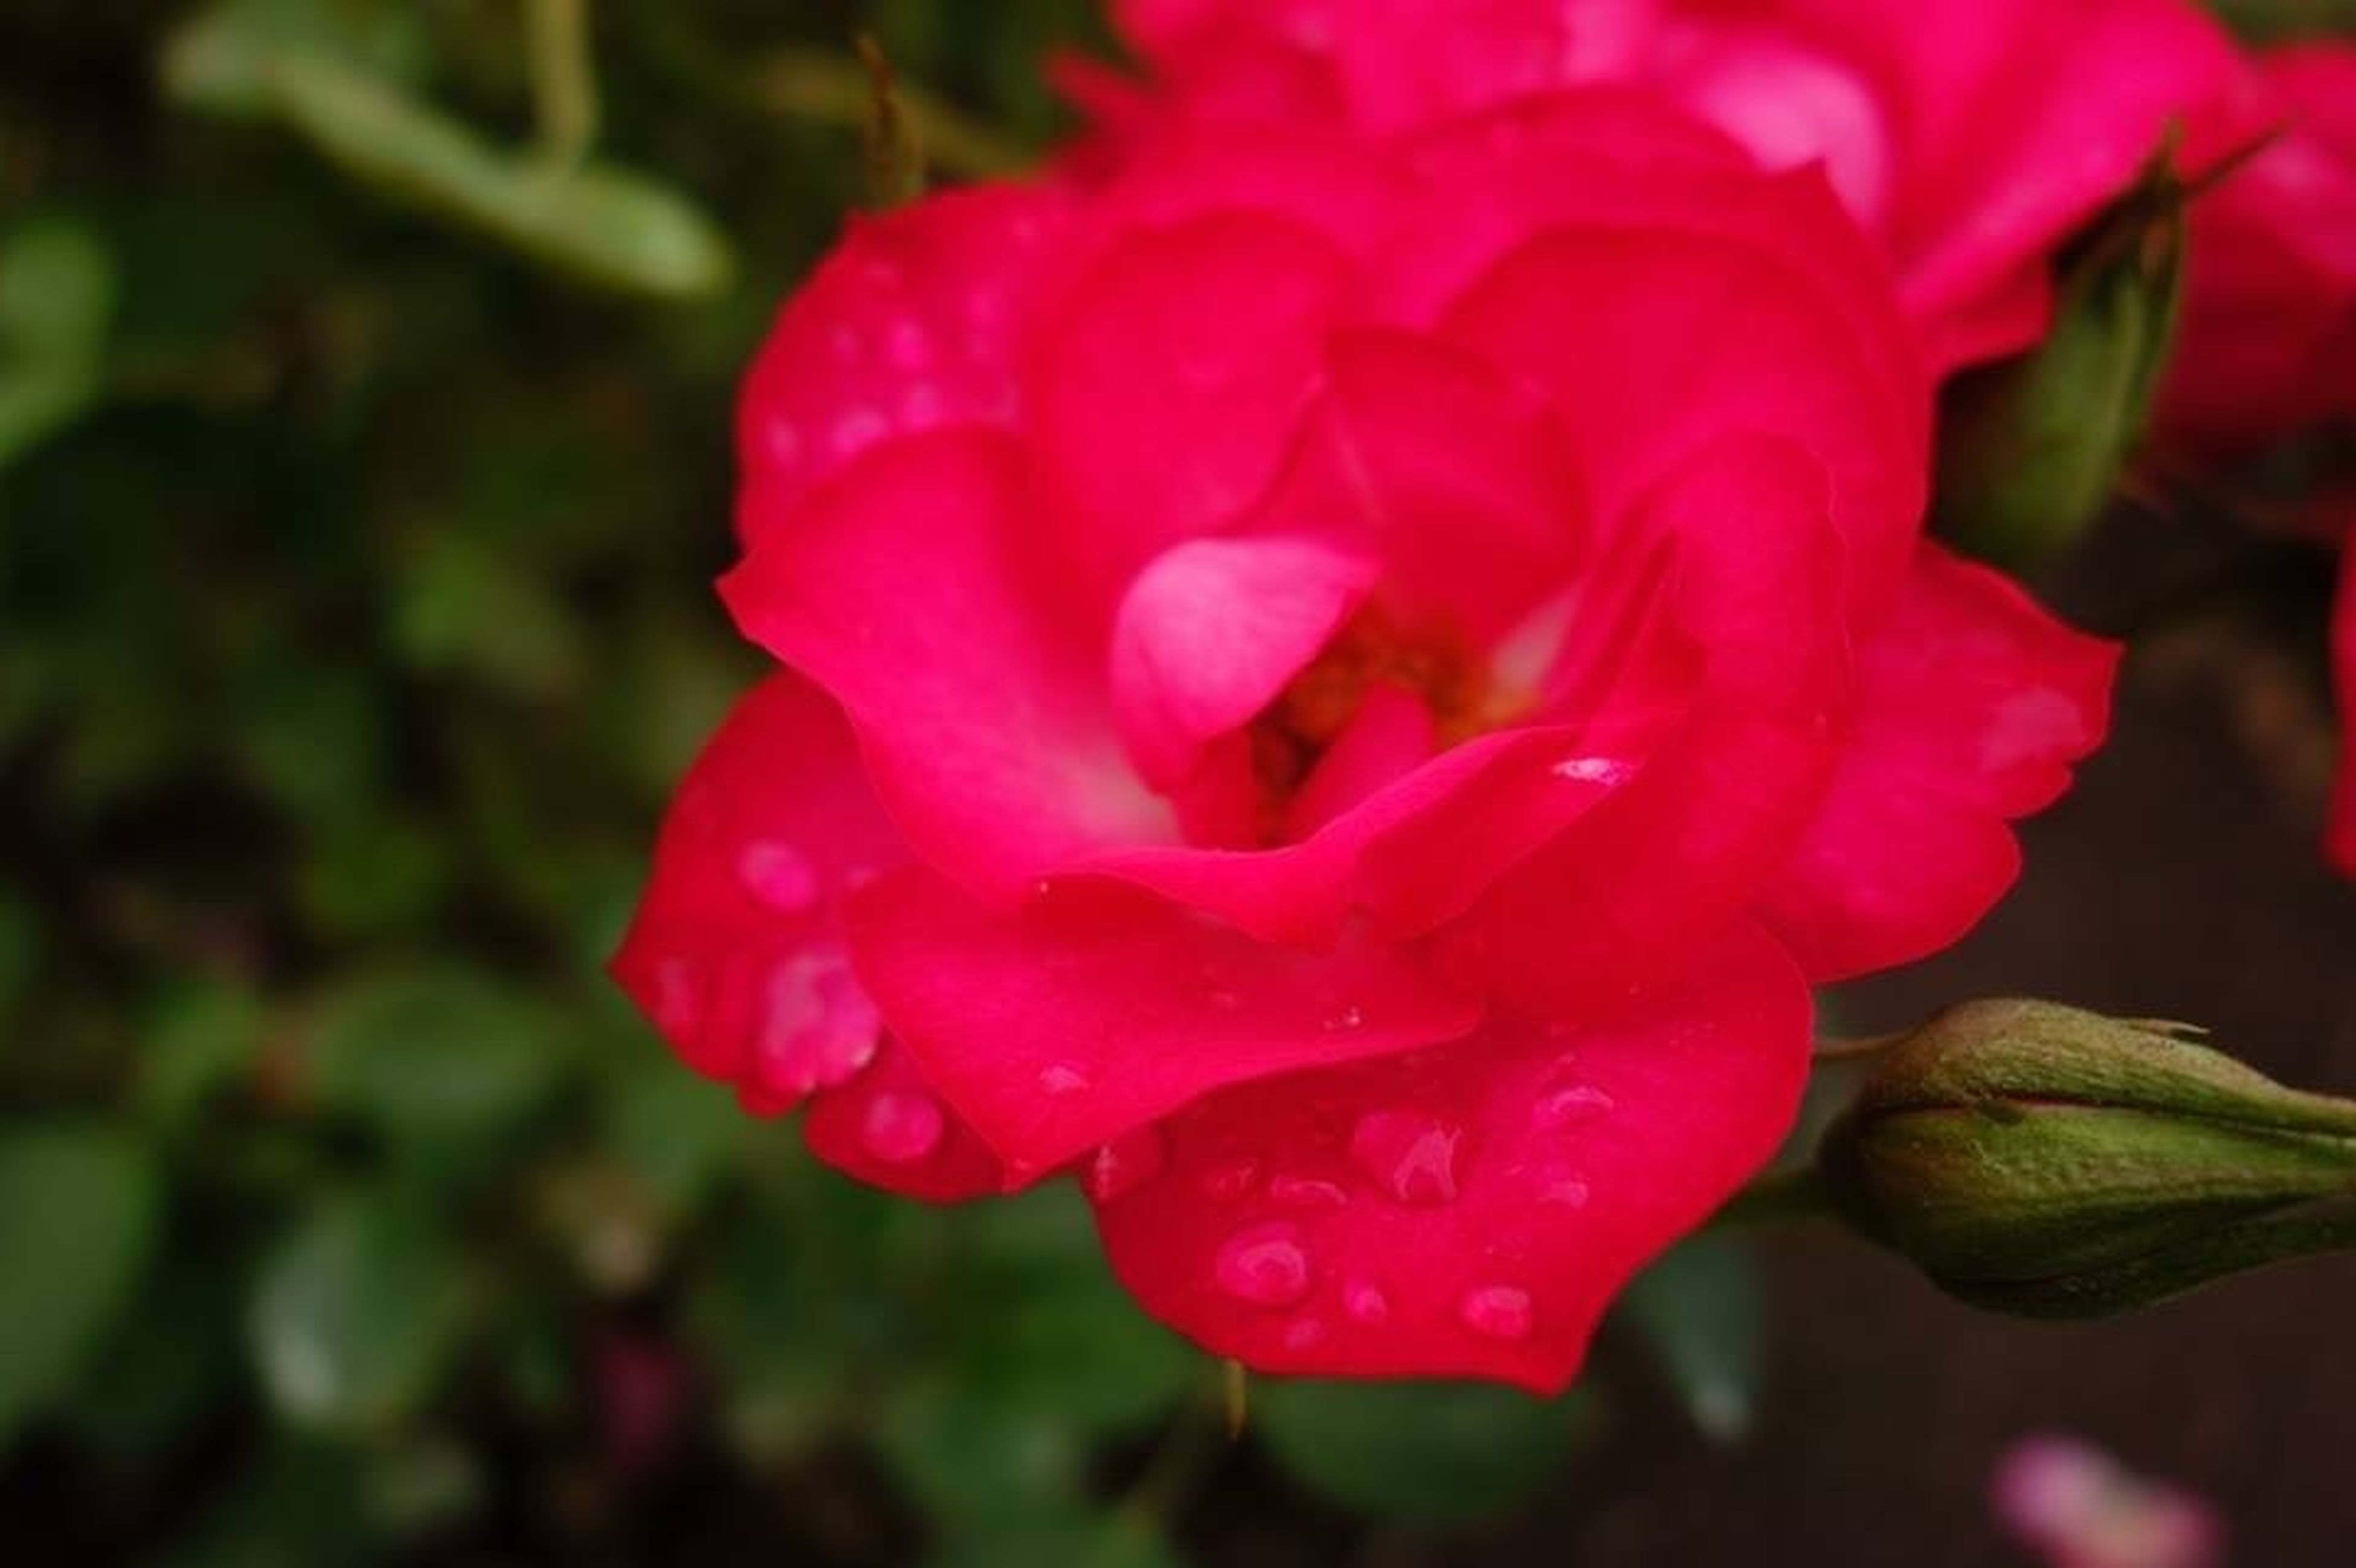 flower, petal, freshness, flower head, fragility, growth, close-up, beauty in nature, blooming, rose - flower, focus on foreground, nature, single flower, plant, red, drop, pink color, in bloom, wet, selective focus